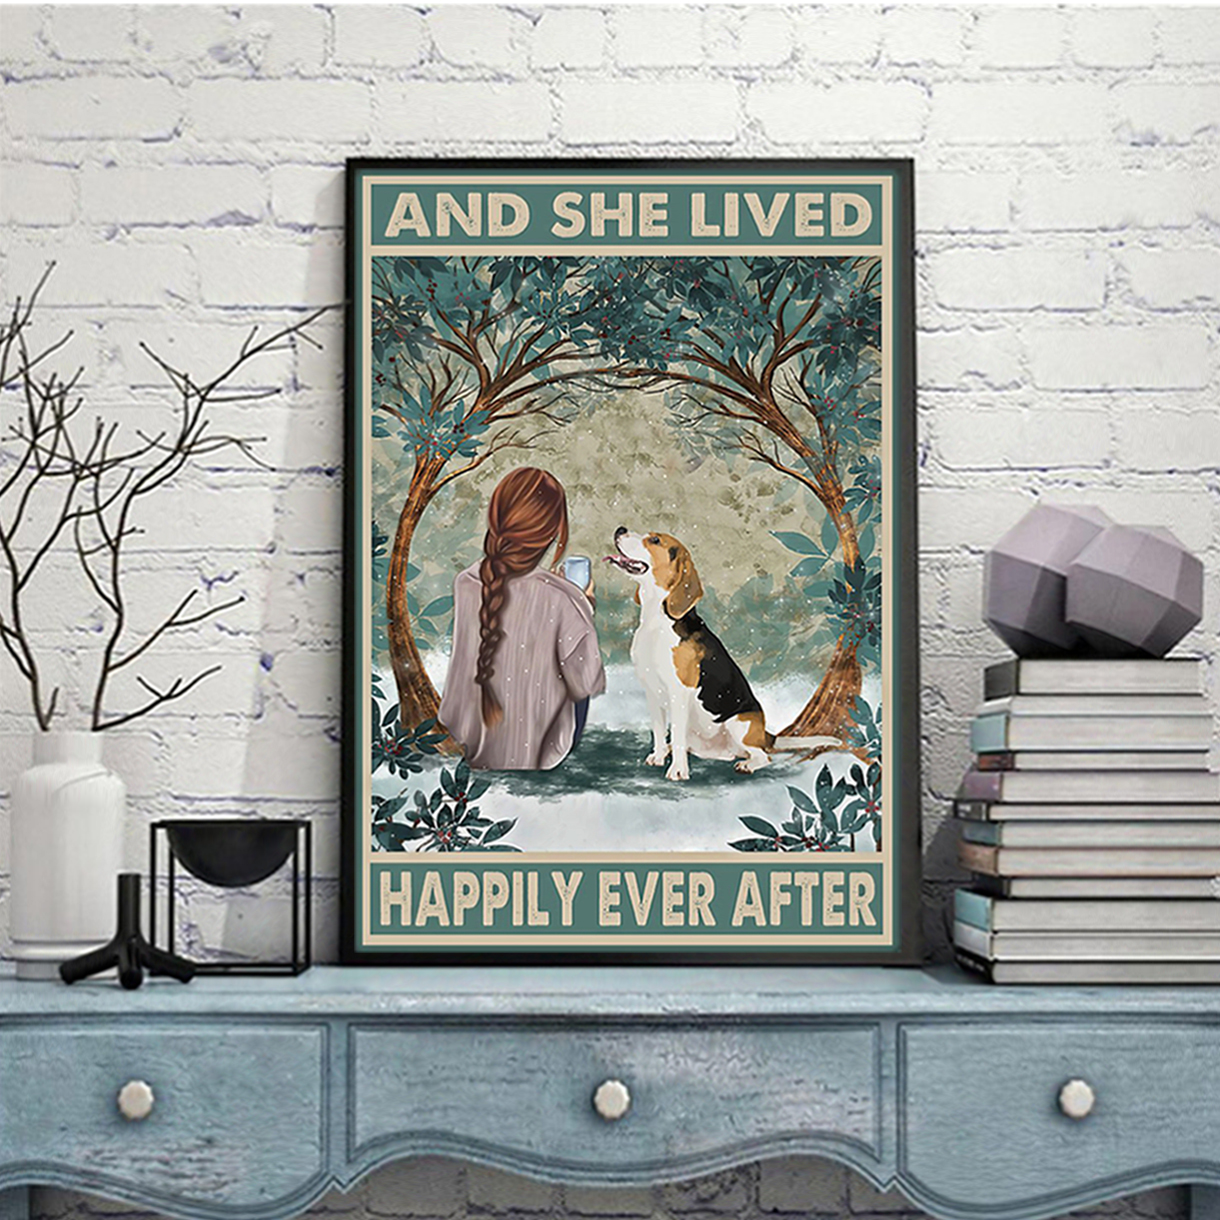 Beagle and she lived happily ever after poster A2